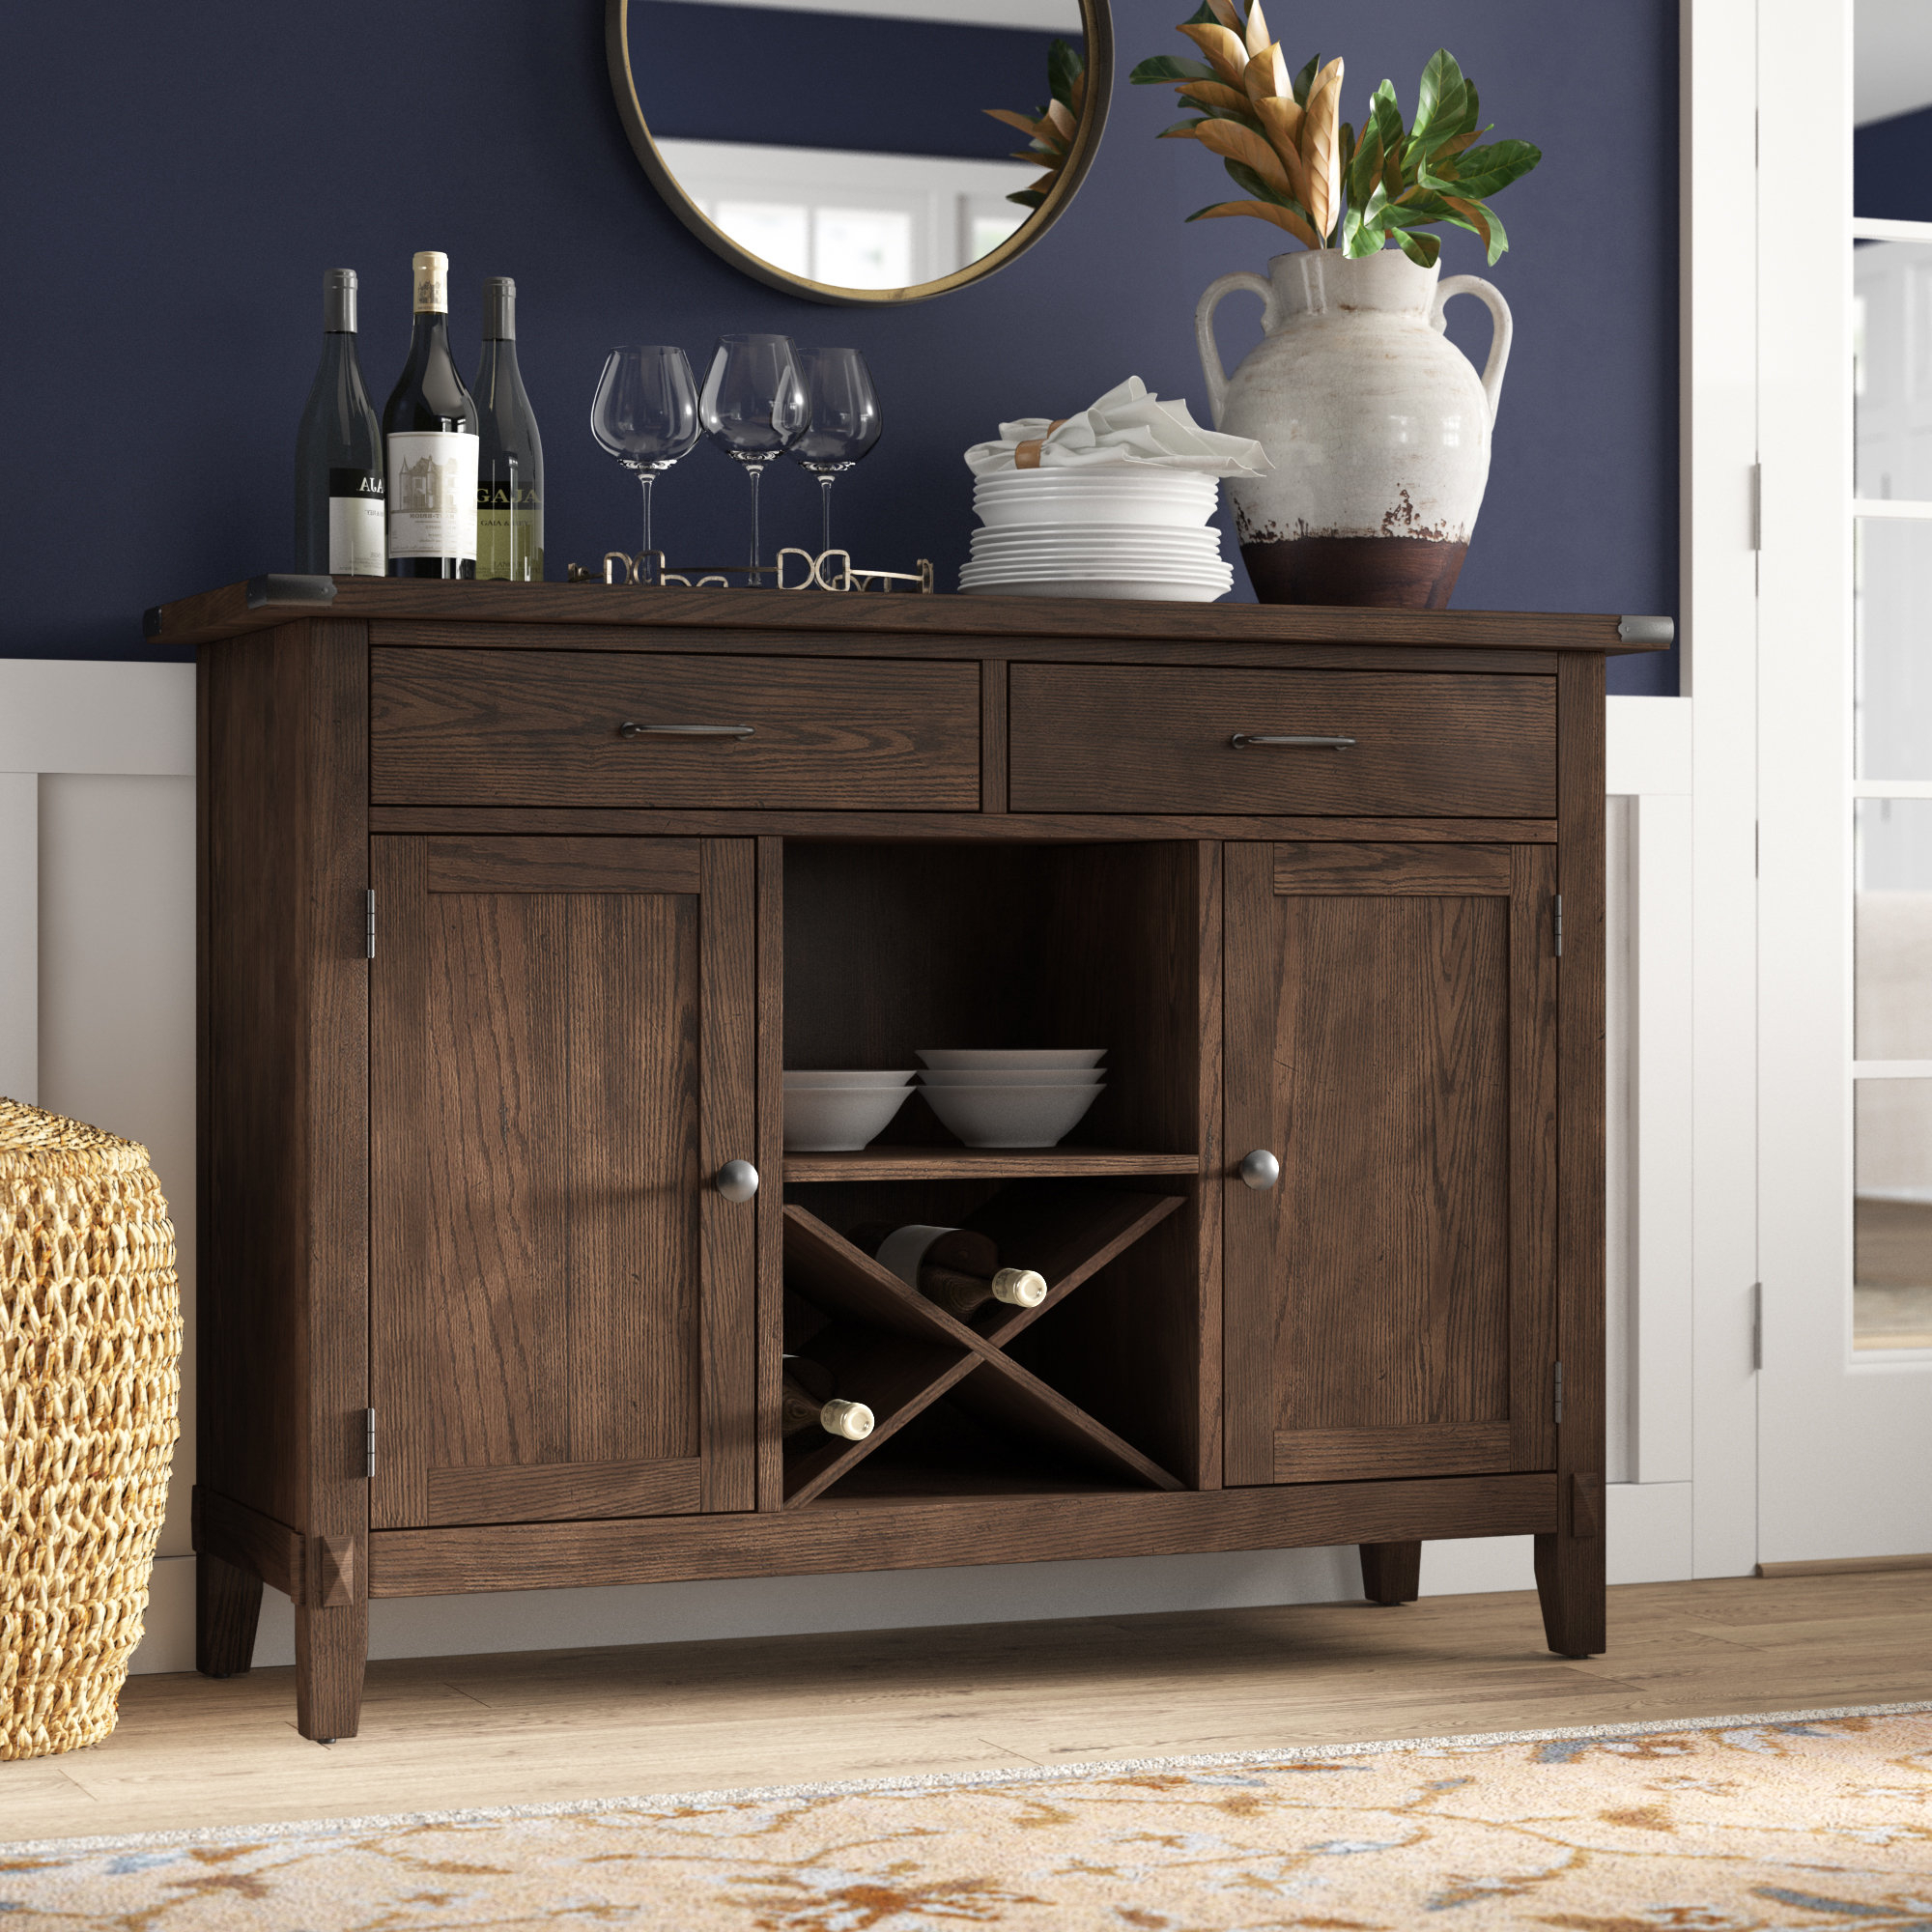 2020 Colberta Sideboard Pertaining To Perez Sideboards (Gallery 17 of 20)